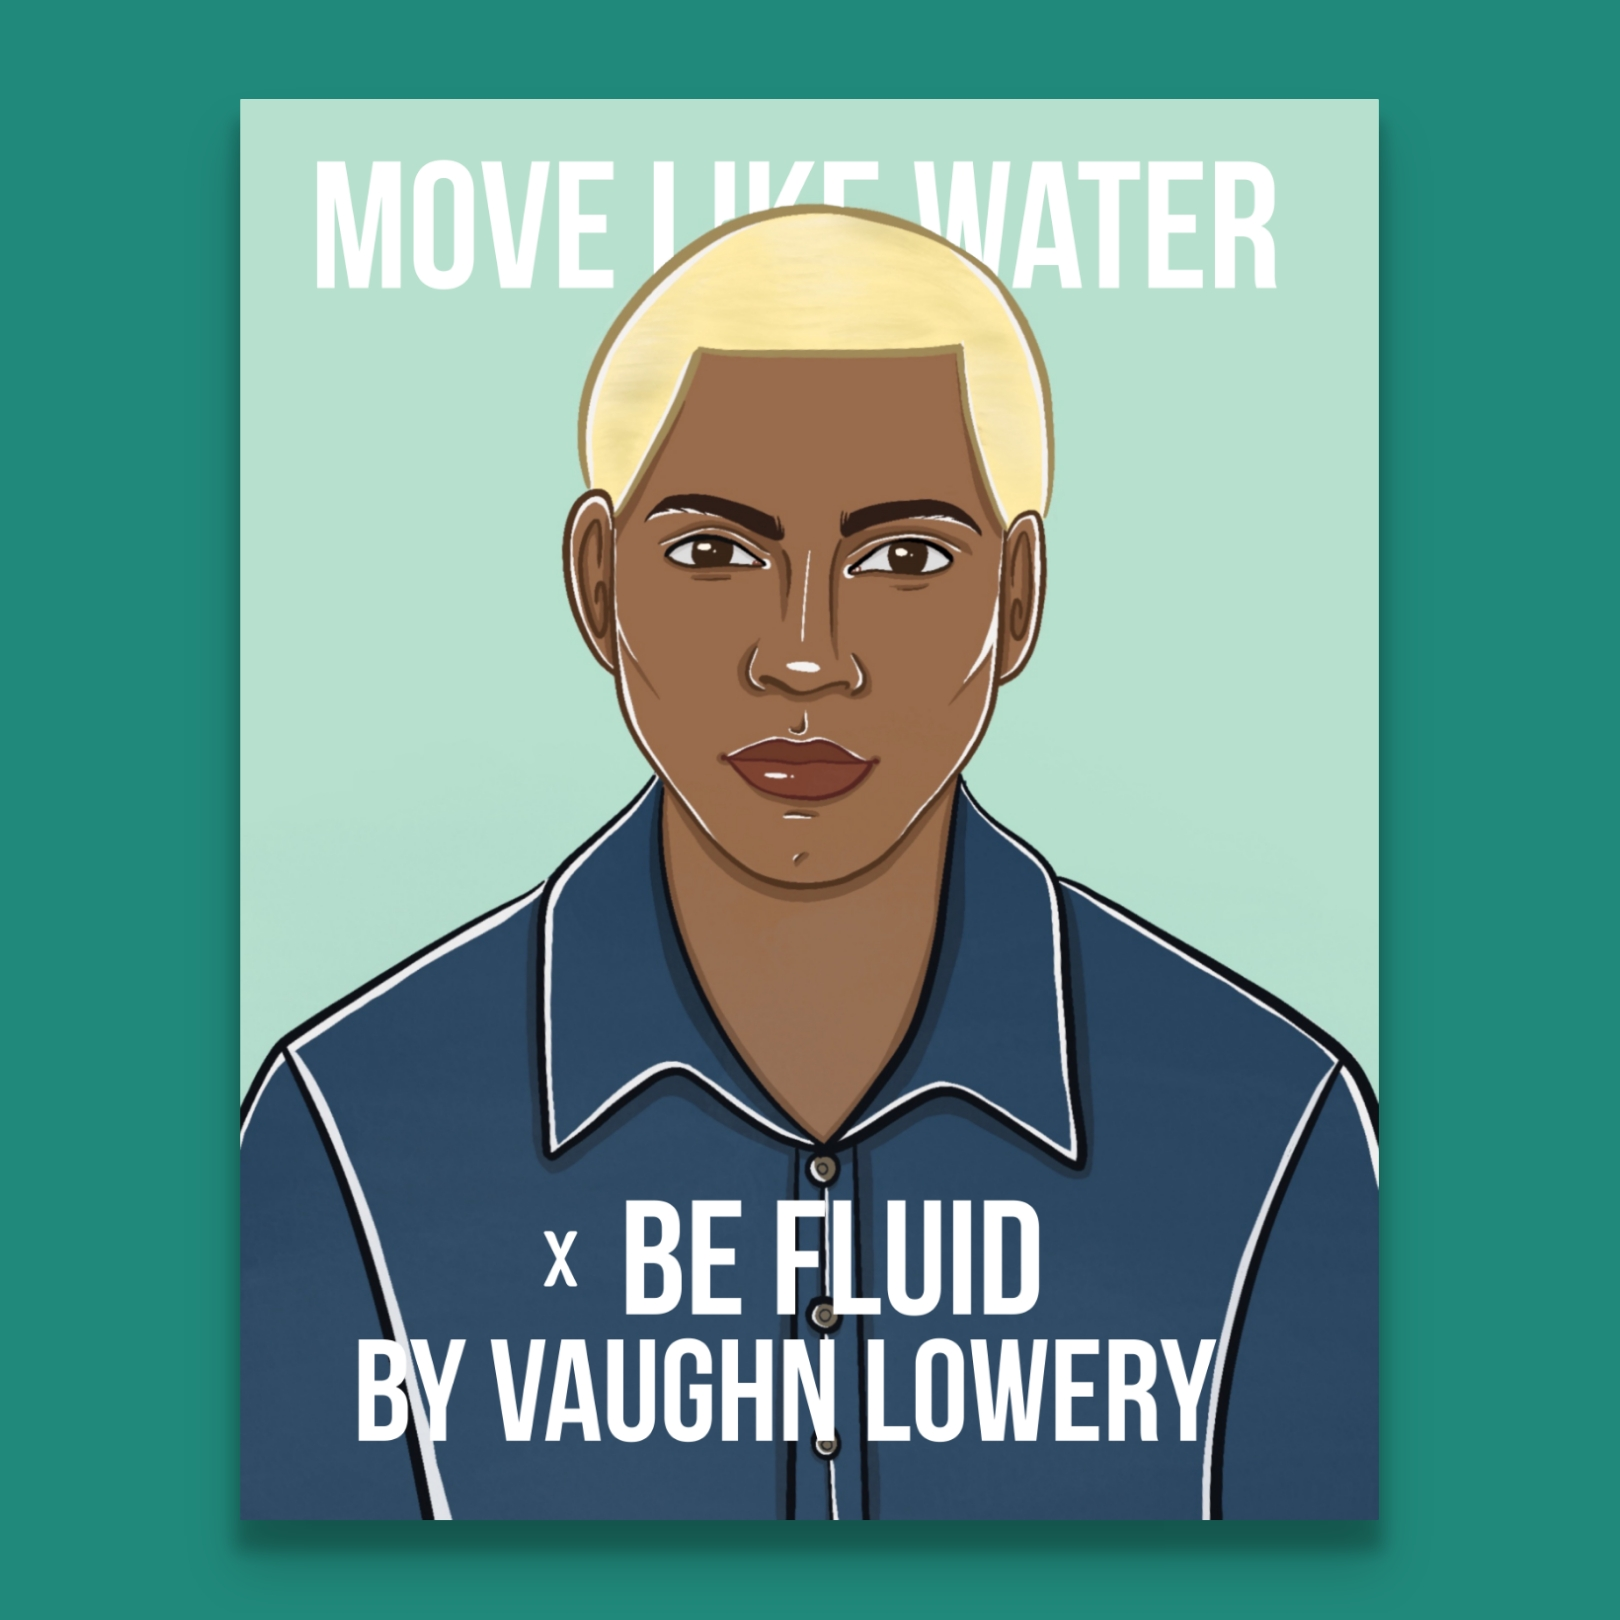 Vaughn Lowery illustration by Allison Christensen for his book Move Like Water x Be Fluid produced by 360 MAGAZINE